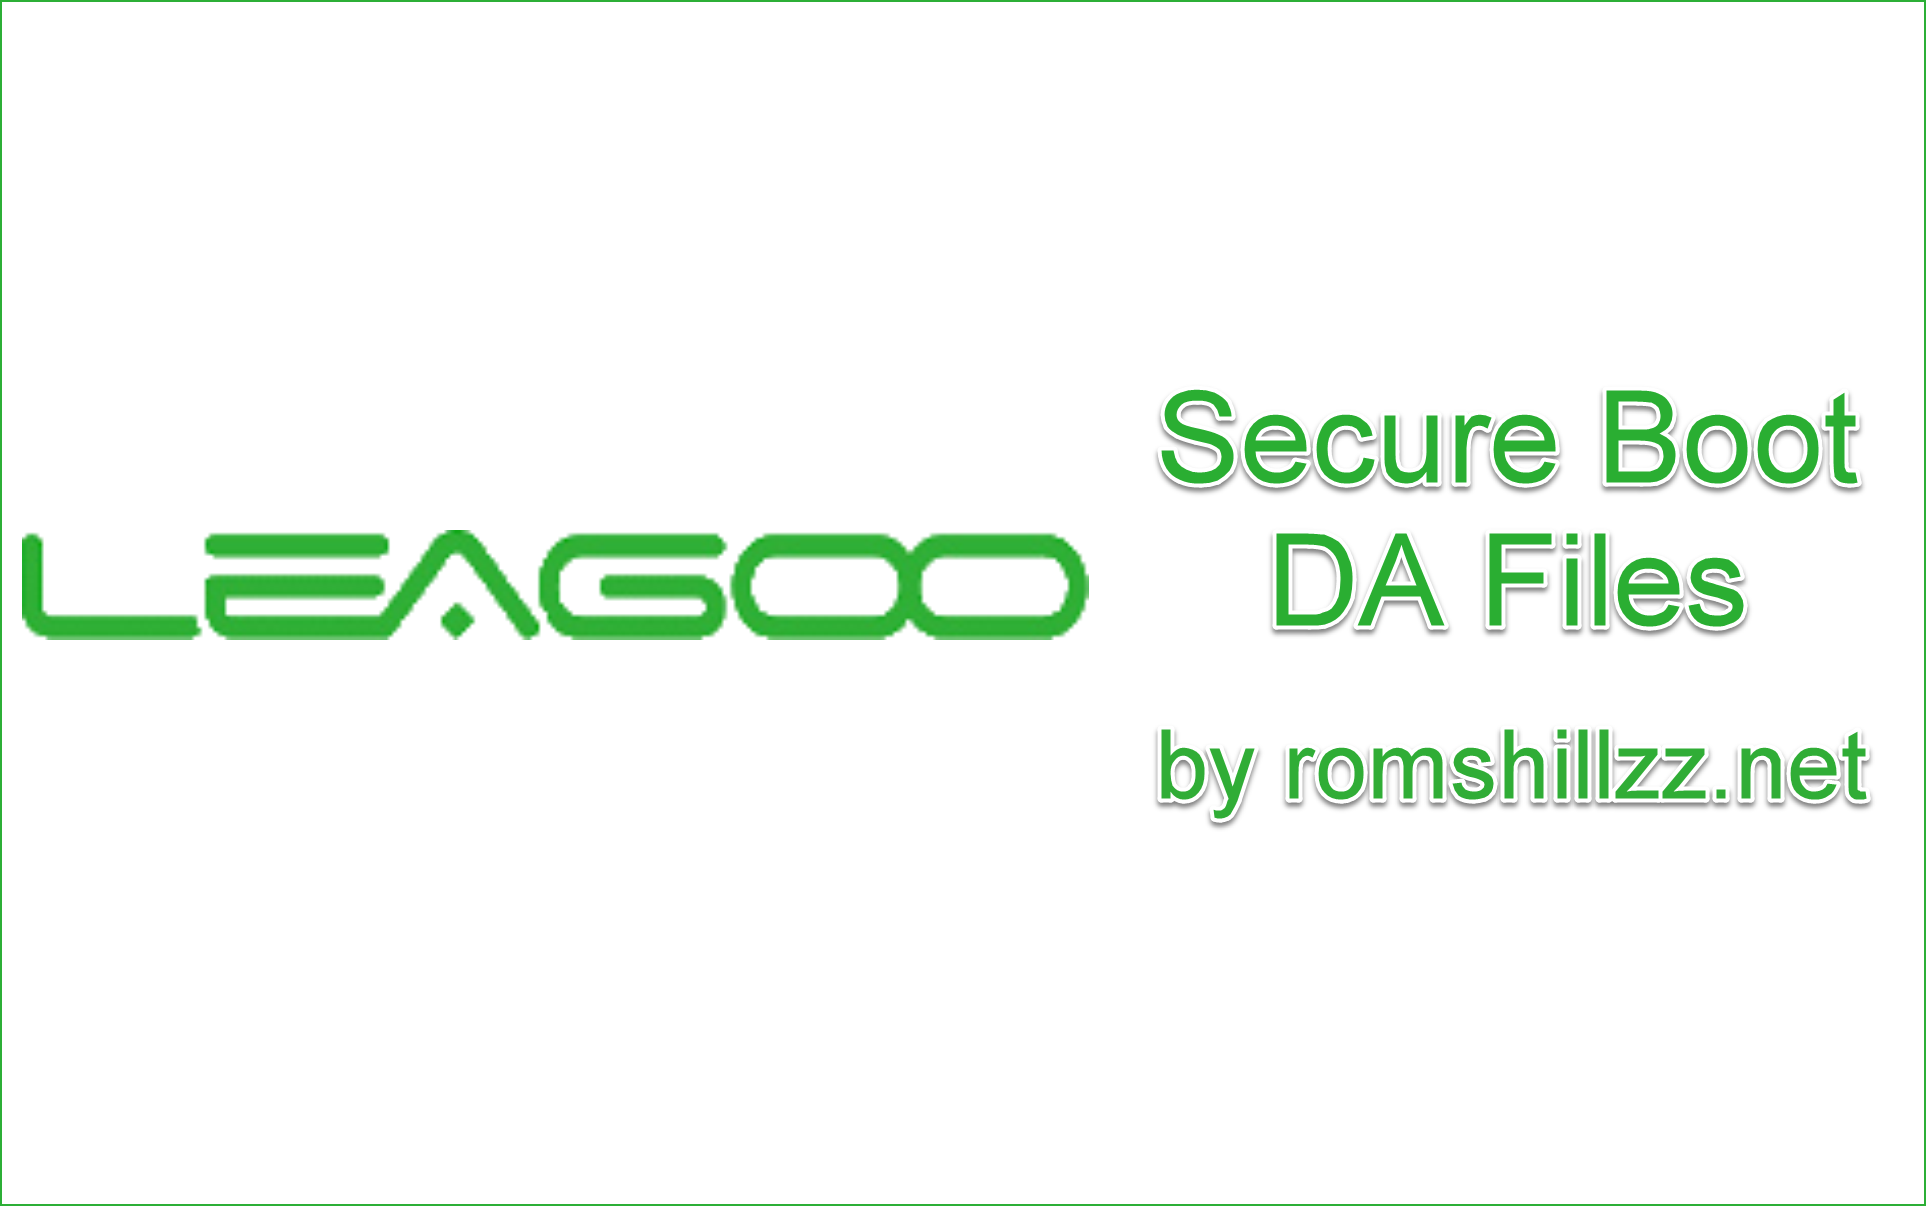 leagoo-secure-boot.png